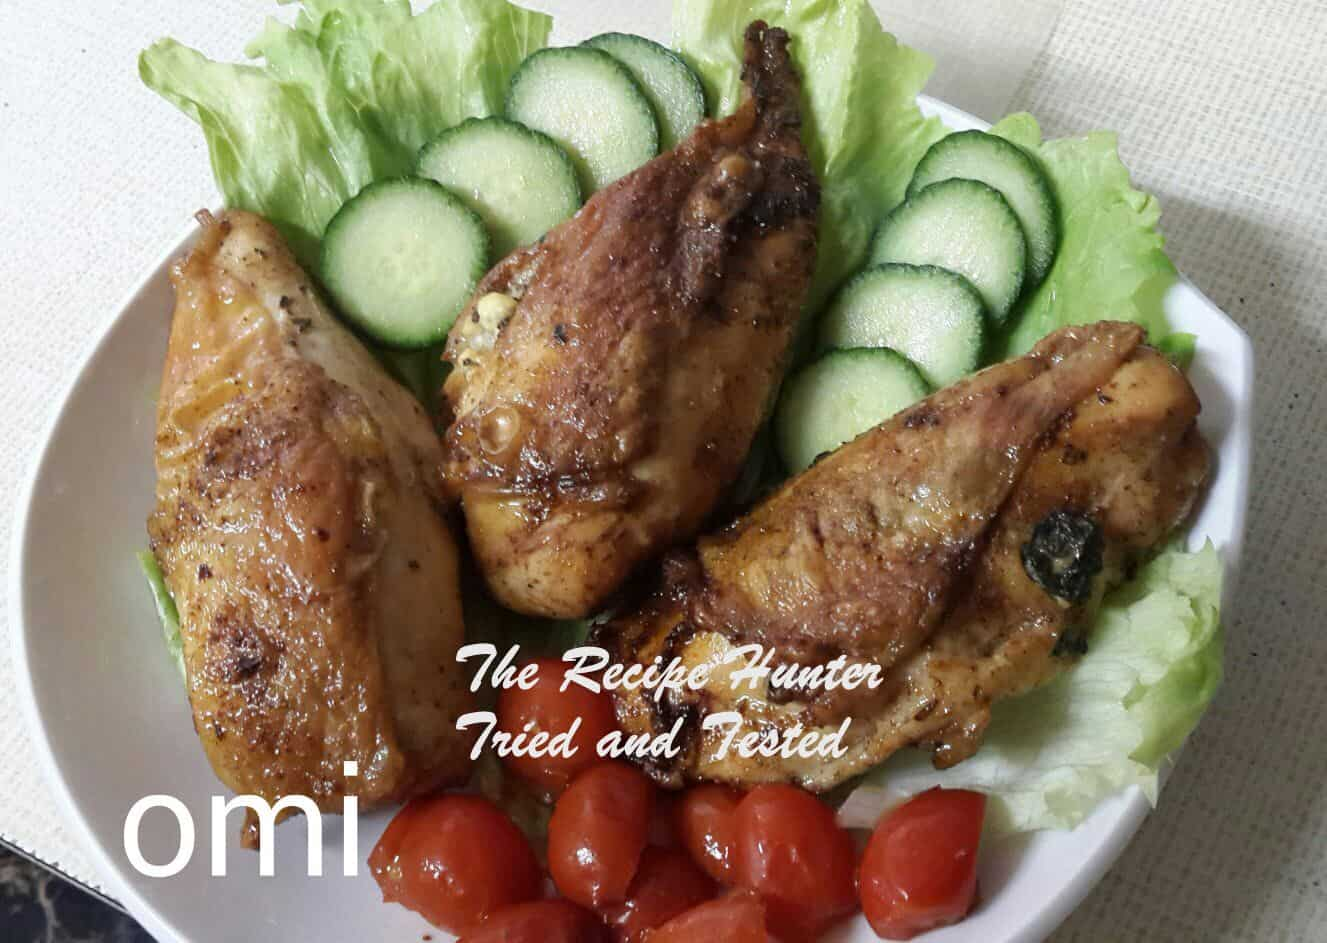 TRH Omi's Roasted Chicken Breass stuffed with a Creamy Spinach and Feta filling